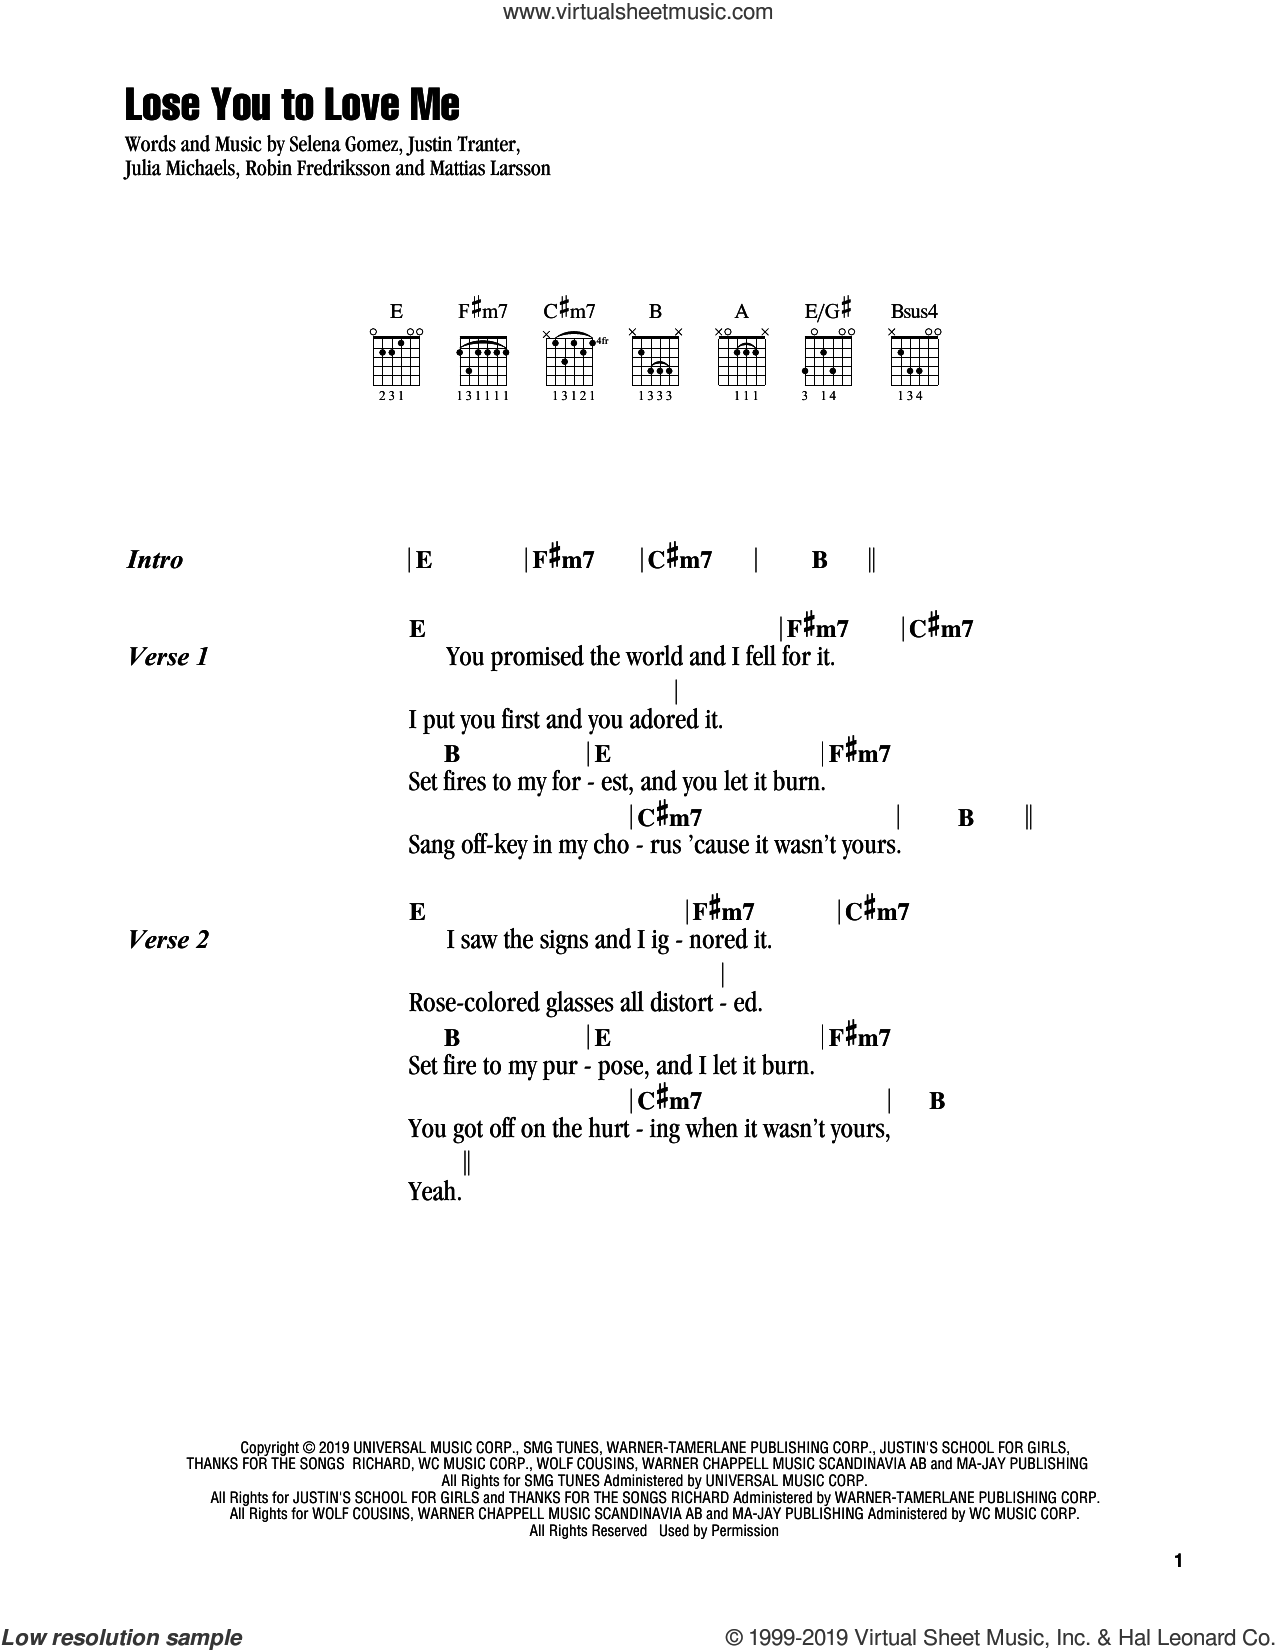 Lose You To Love Me sheet music for guitar (chords) by Selena Gomez, Julia Michaels, Justin Tranter, Mattias Larsson and Robin Fredriksson, intermediate skill level